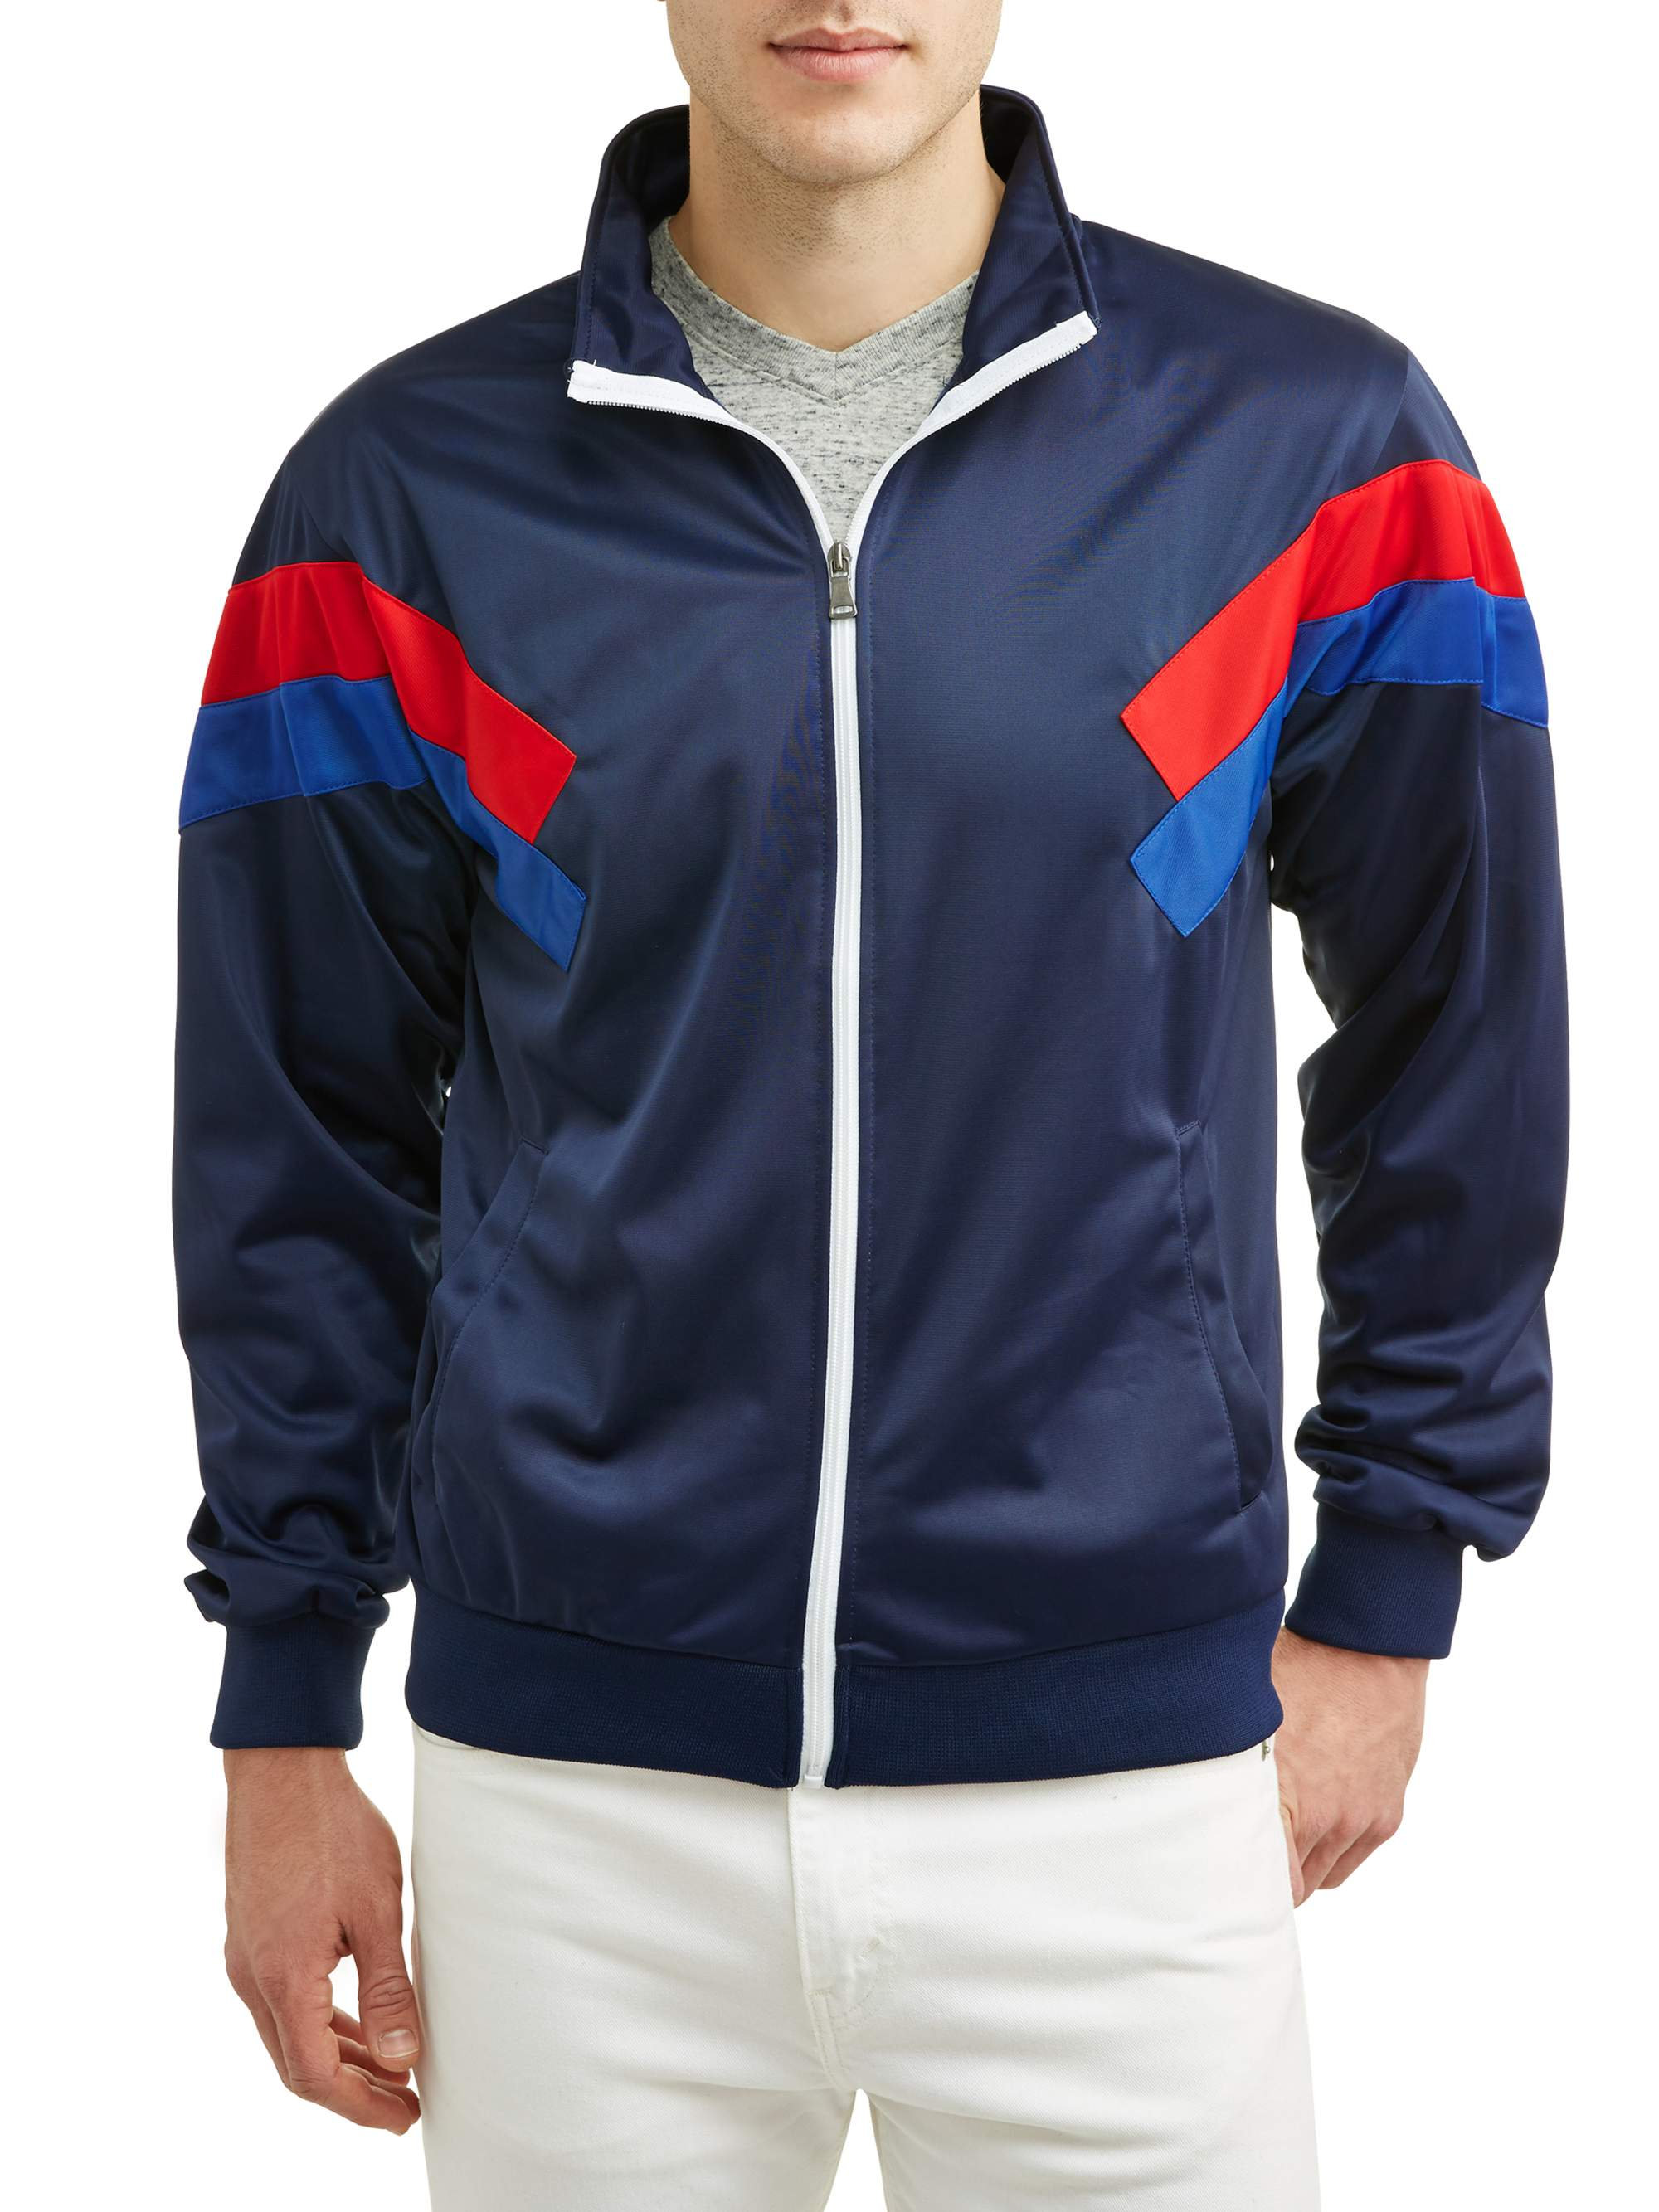 Men's Tricot Full Zip Jacket, up to size 3XL